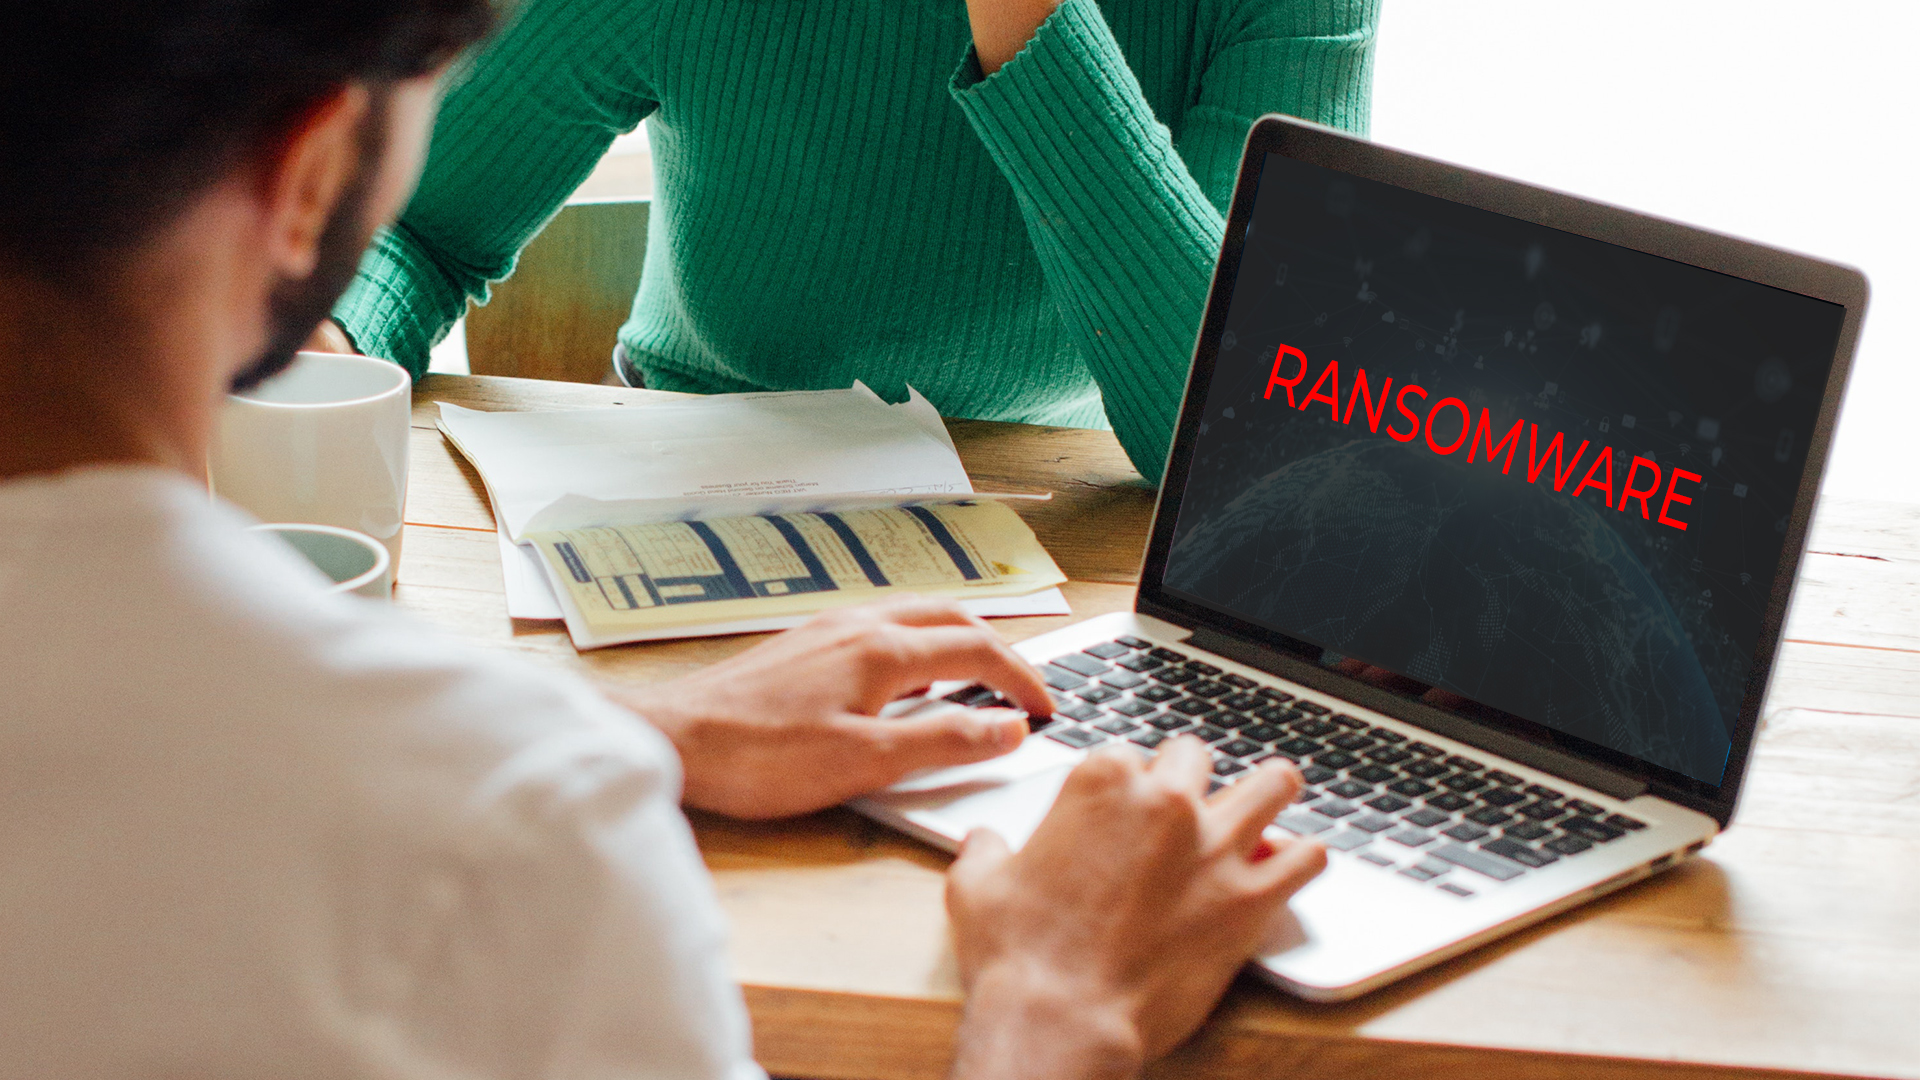 More businesses targeted by ransomware in the past year: study